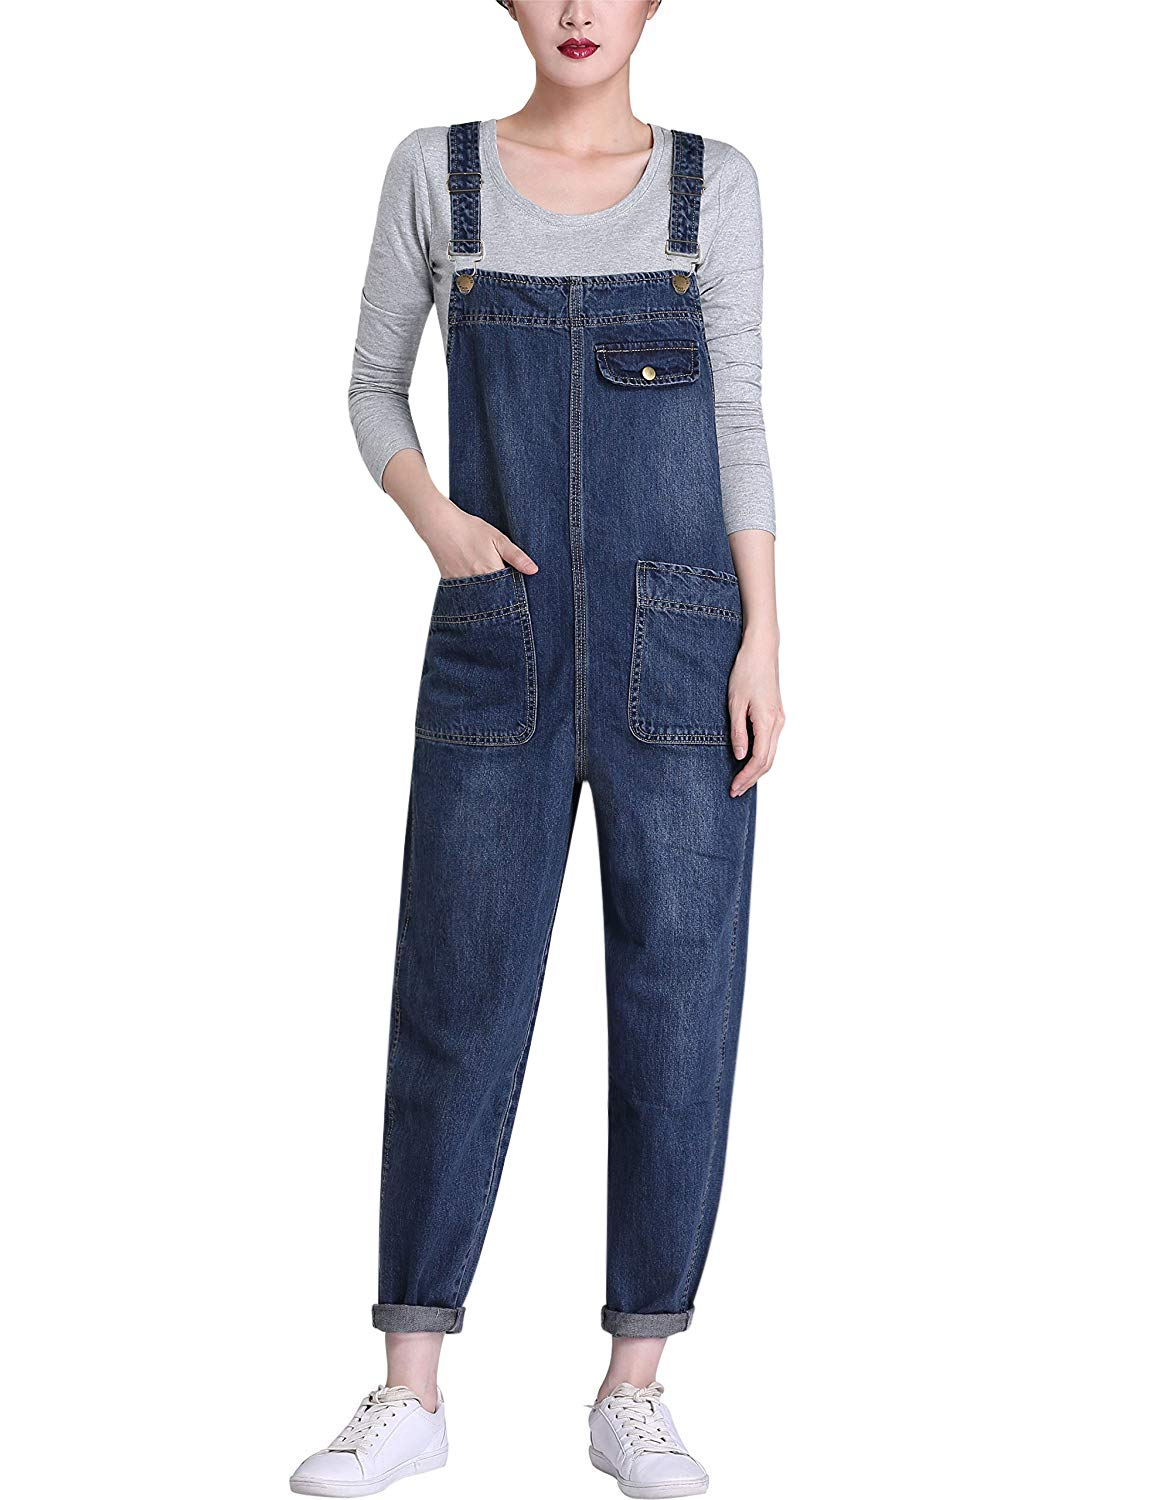 Yeokou Womens Casual Denim Cropped Harem Overalls Pant Jeans Jumpsuits, Blue, Medium